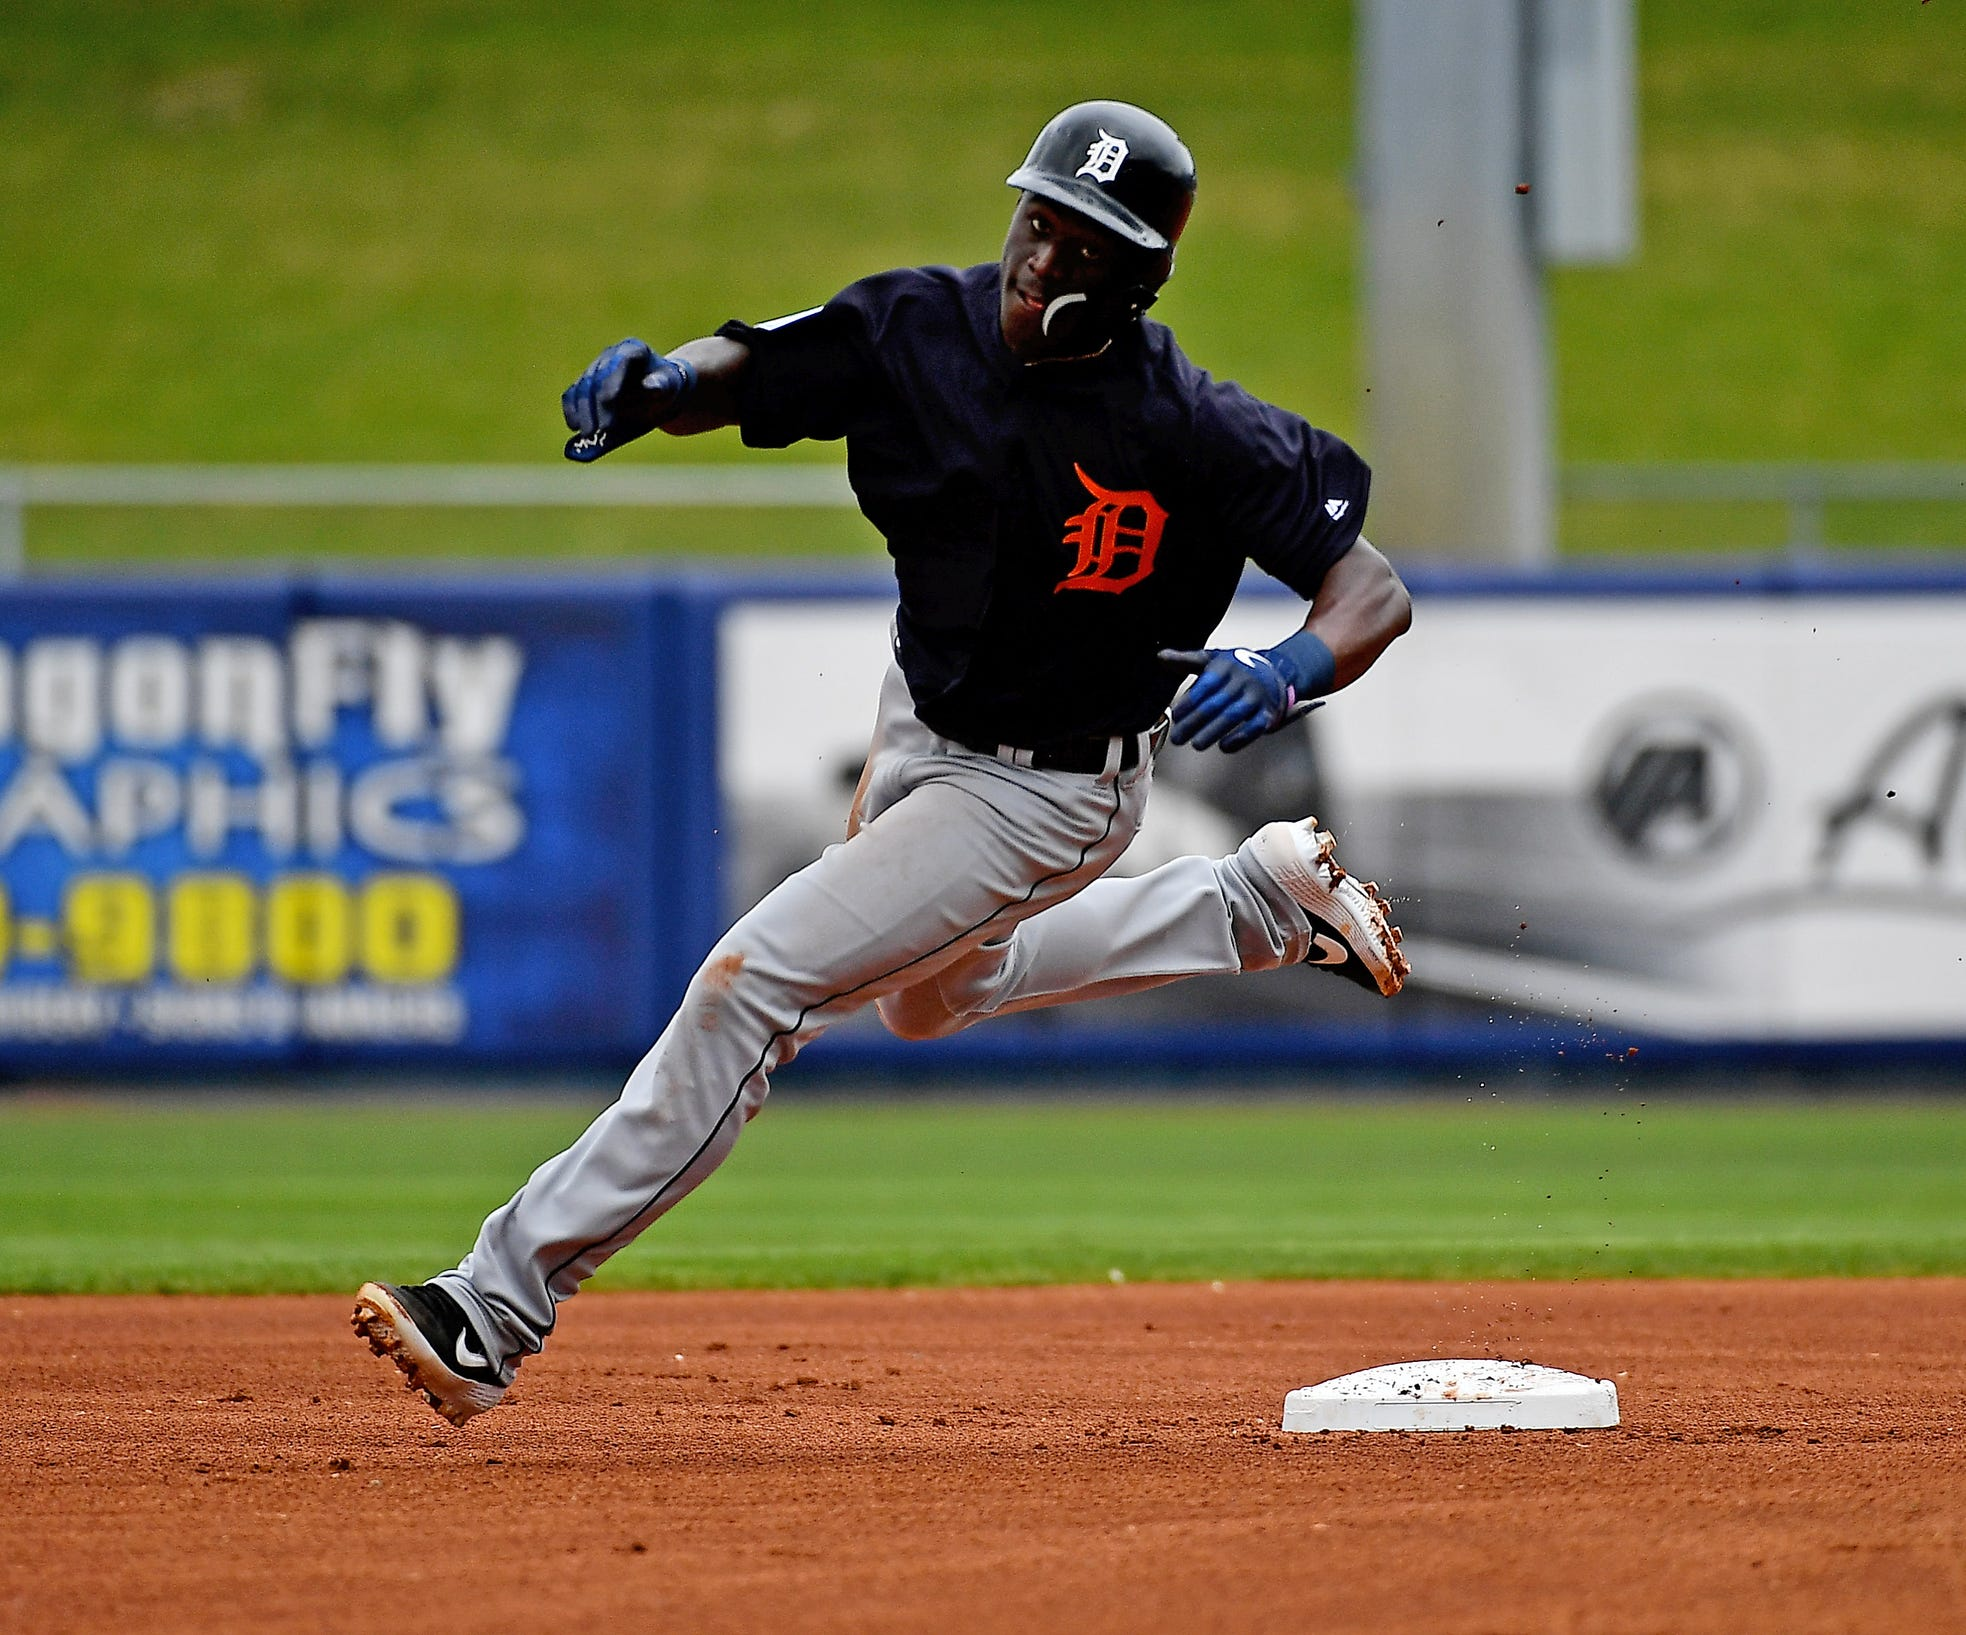 Tigers center fielder Daz Cameron rounds second base in the first inning of the spring training game on Tuesday, Feb. 26, 2019, in Port St. Lucie, Fla.